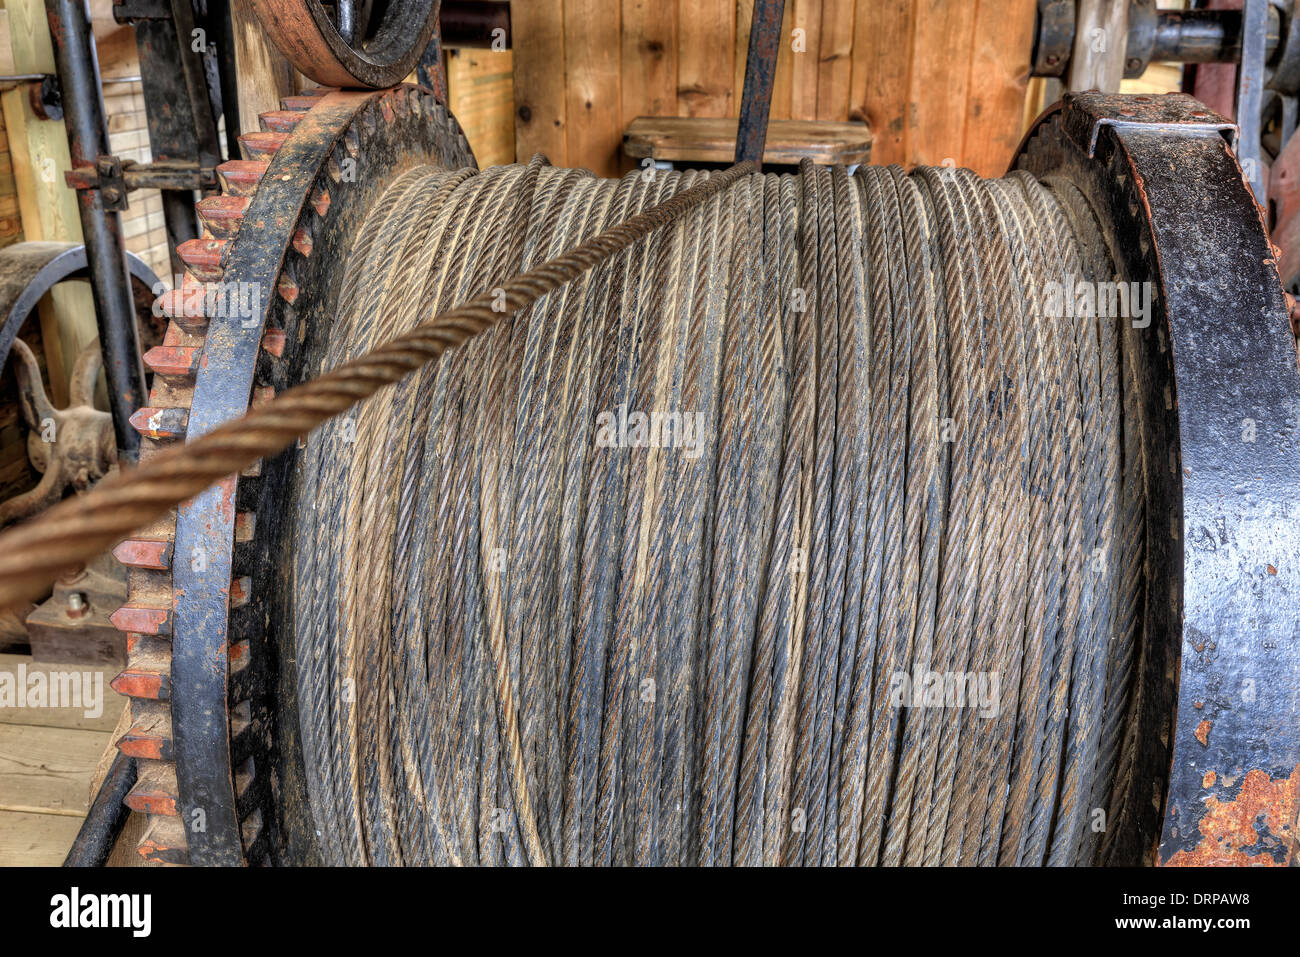 Cable winch on the William M, steam-powered tugboat, Algonquin Logging Museum, Ontario, Canada - Stock Image